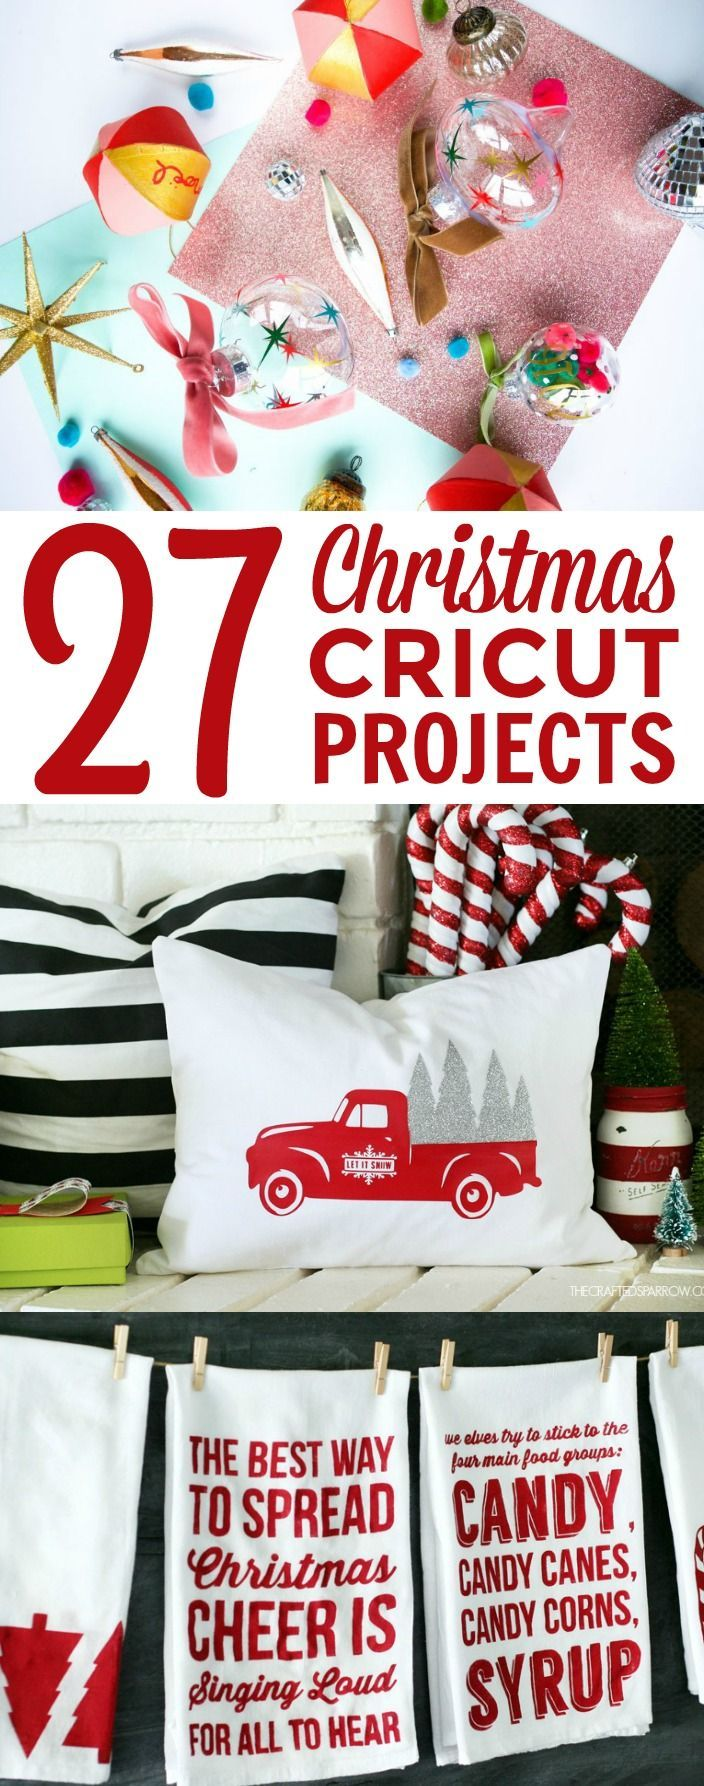 44++ Crafts to make and sell with cricut information